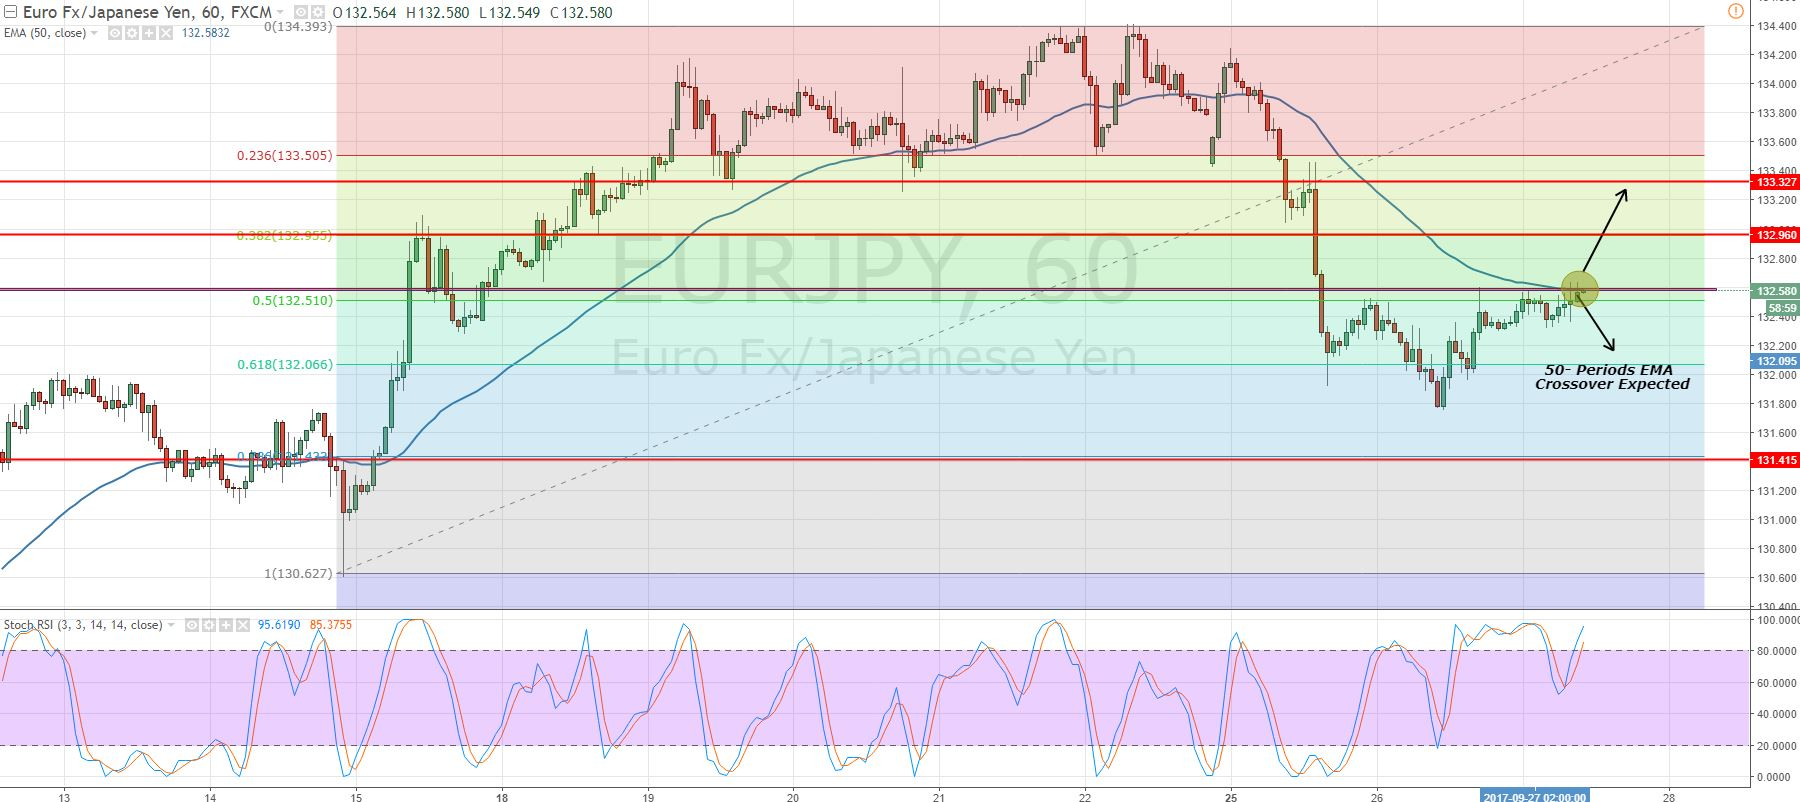 EURJPY - Hourly Chart - Moving Average Crossover